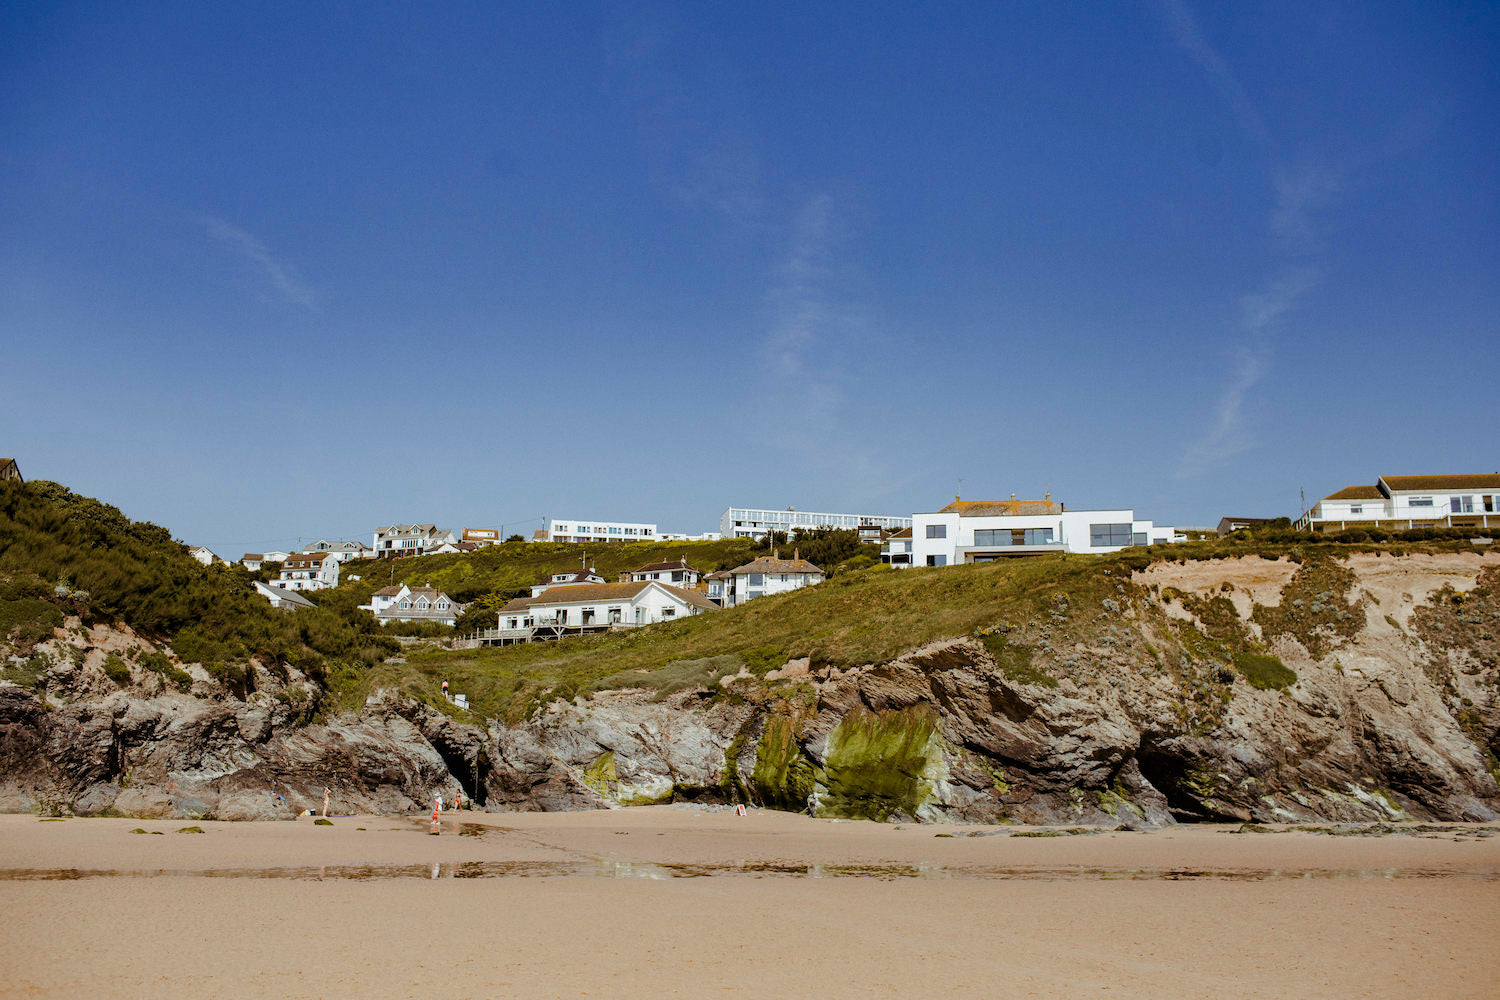 Bedruthan Hotel views from beach